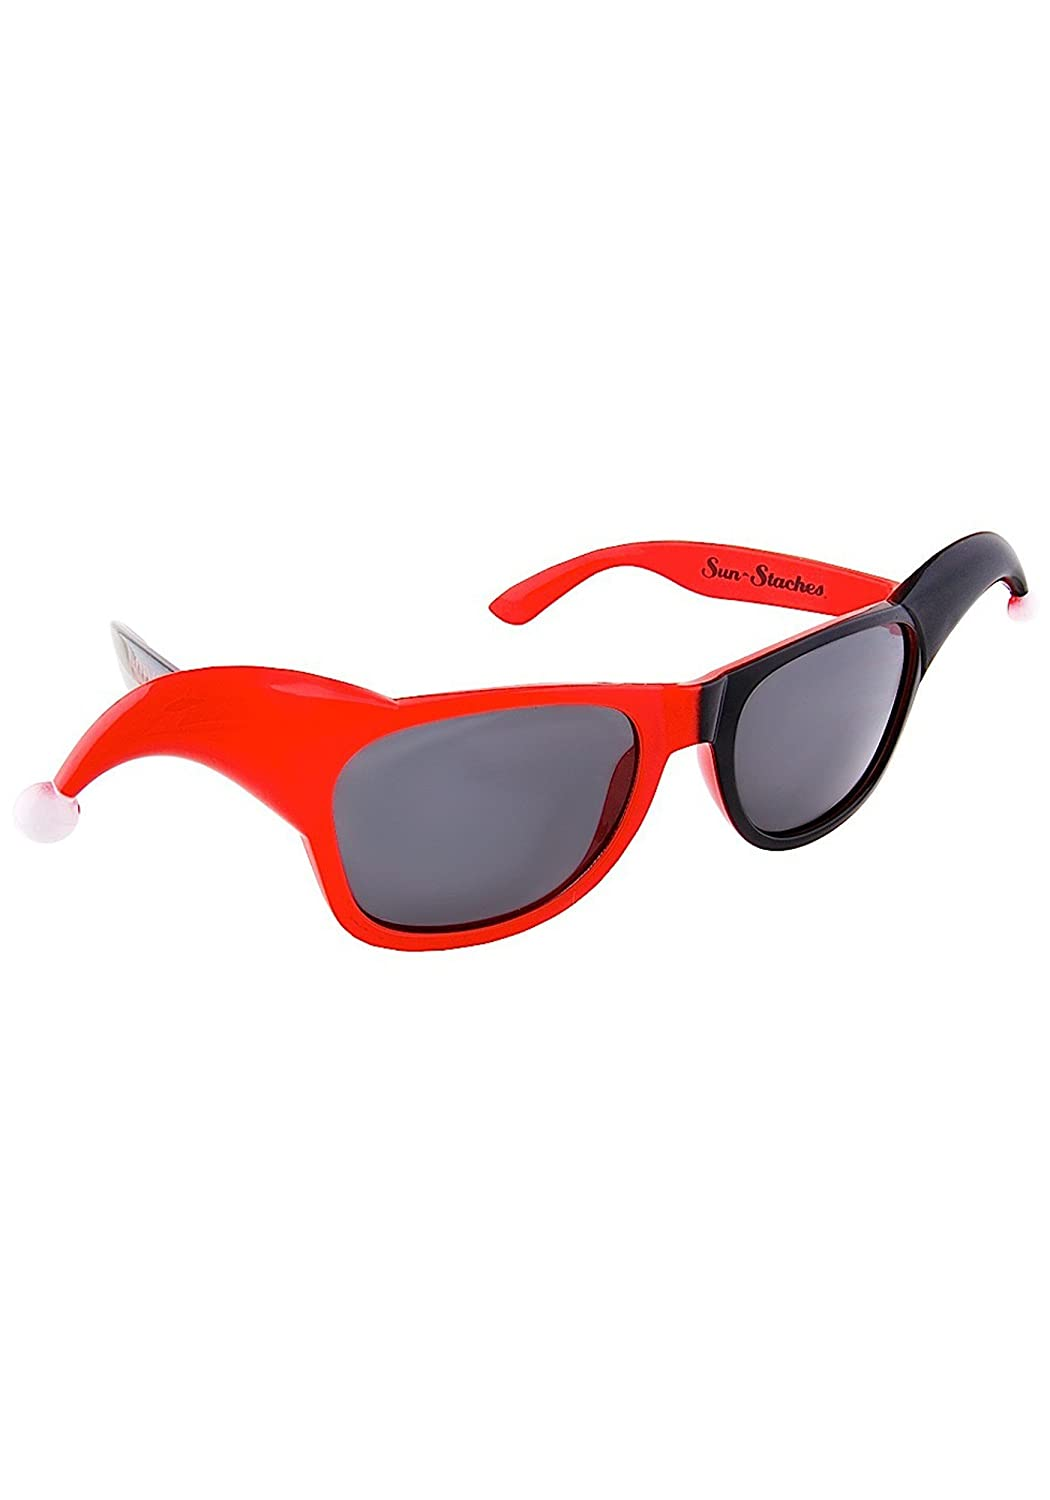 Harley Quinn Small Dark Lens Sun-Staches Little Kids Party Favors UV400 Distributed by H2W harley/_quinn